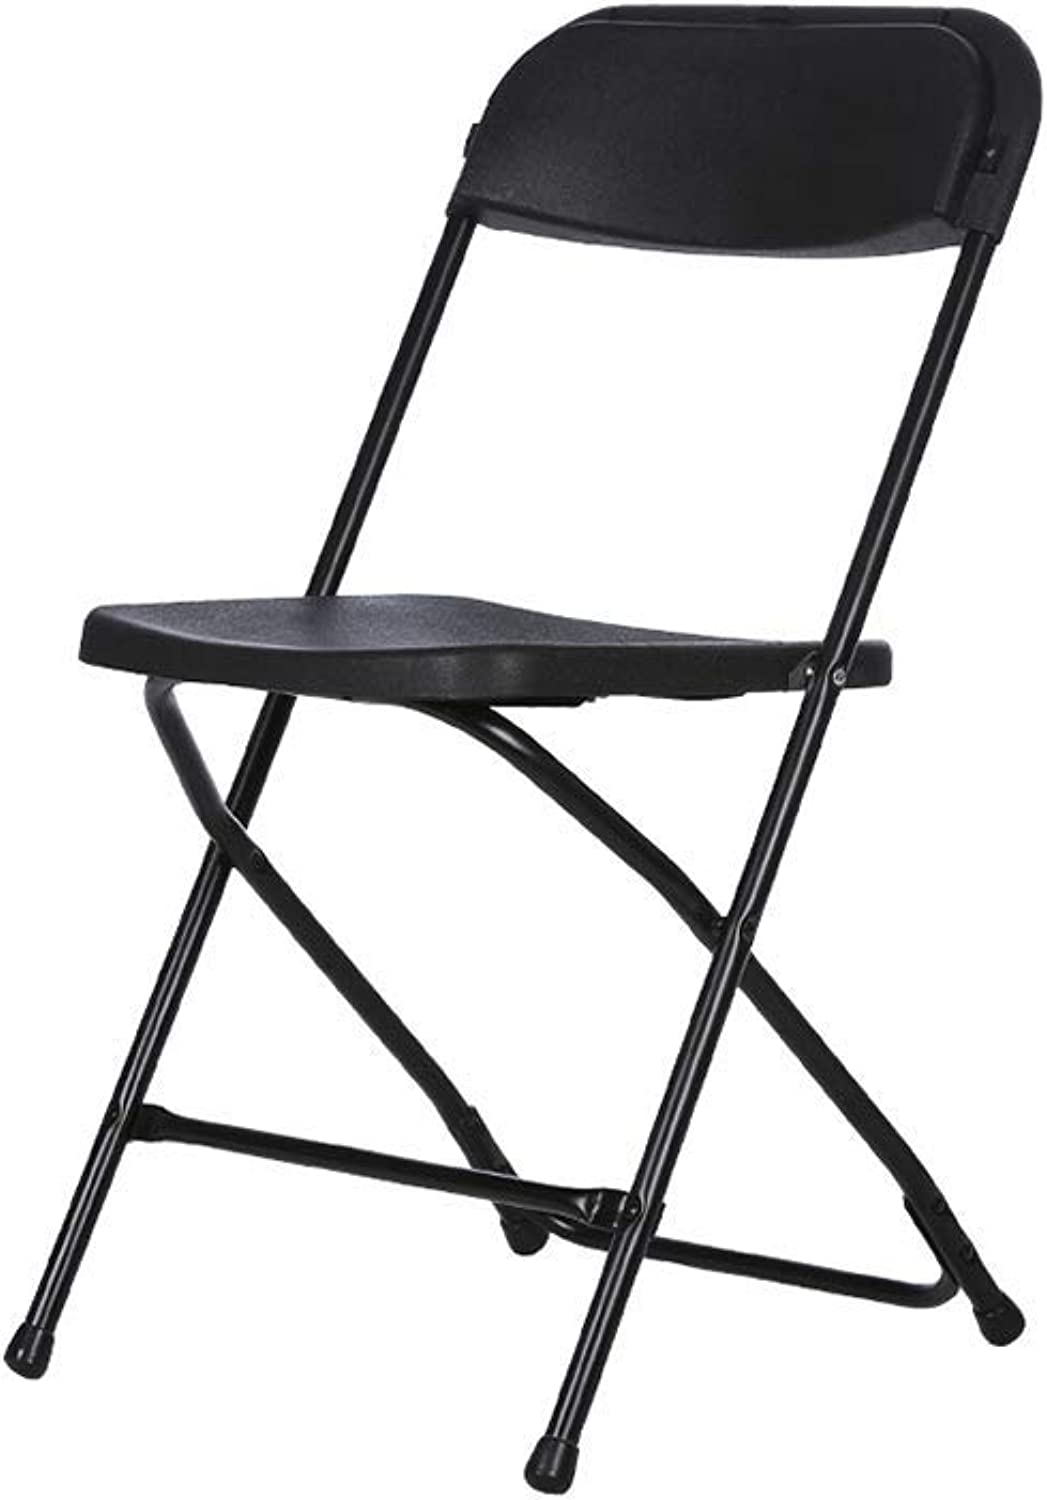 YCSD Plastic Folding Chair, Business Conference Chair Leisure Chair Computer Chair Dining Chair Office Conference Chair Staff Chair (color   Black)